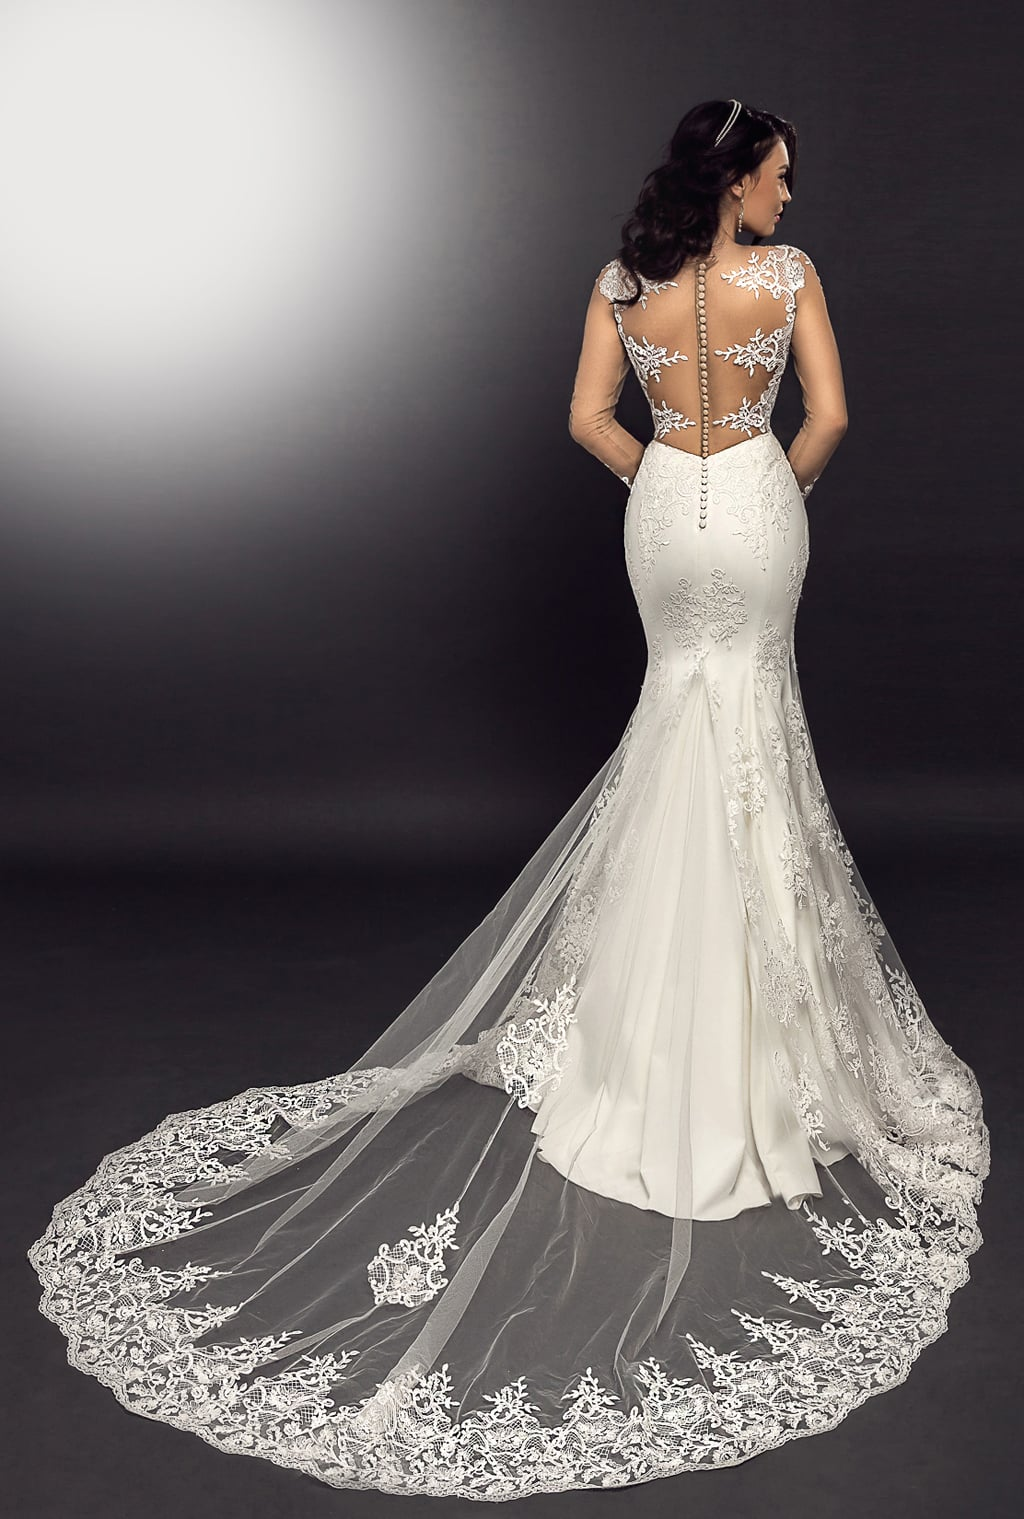 Pallas Model - Colectia Dreams - Adora Sposa (2)